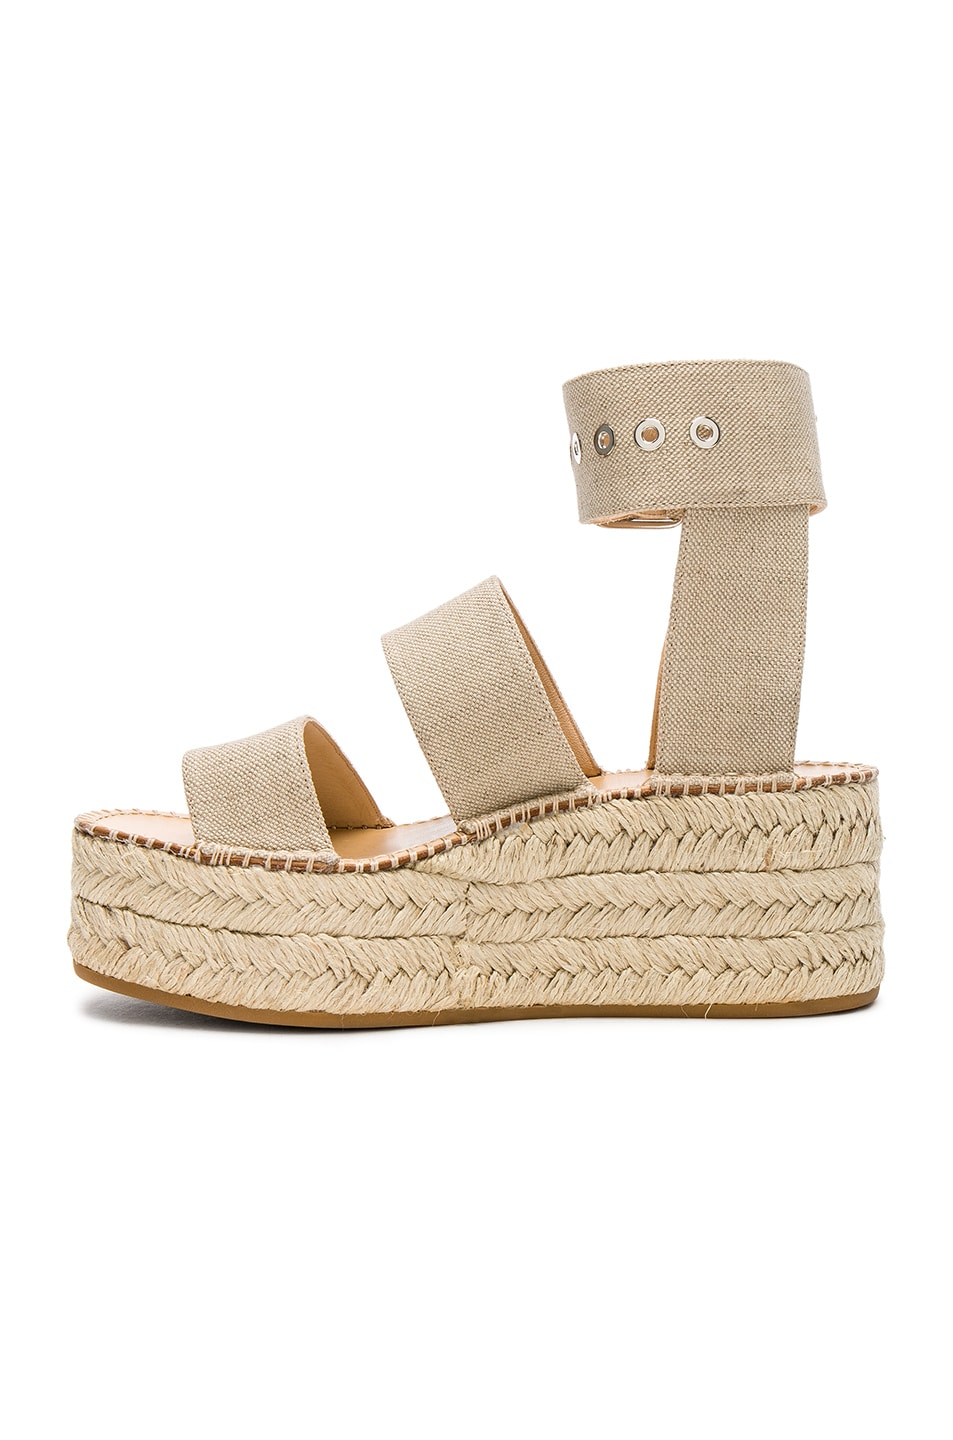 Image 5 of Rag & Bone Canvas Tara Sandals in Natural Canvas